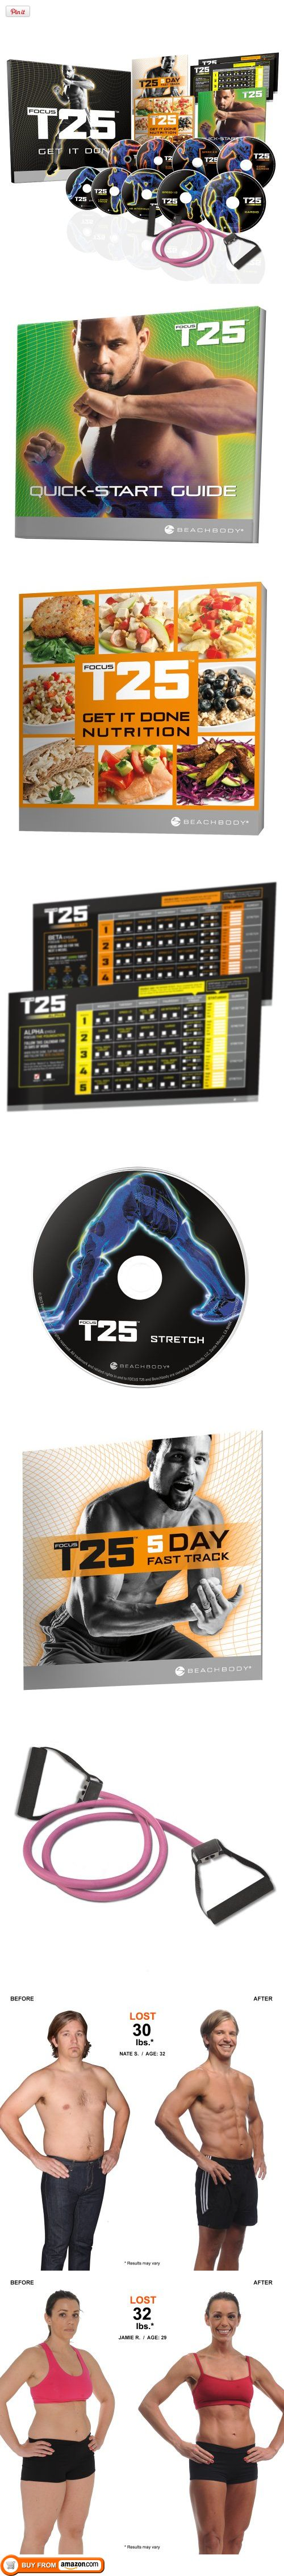 Shaun T's FOCUS T25 DVD Workout, Get an hour's results in just 25 minutes a day. The only thing standing between you and the results you want is time.  LOVE IT!!